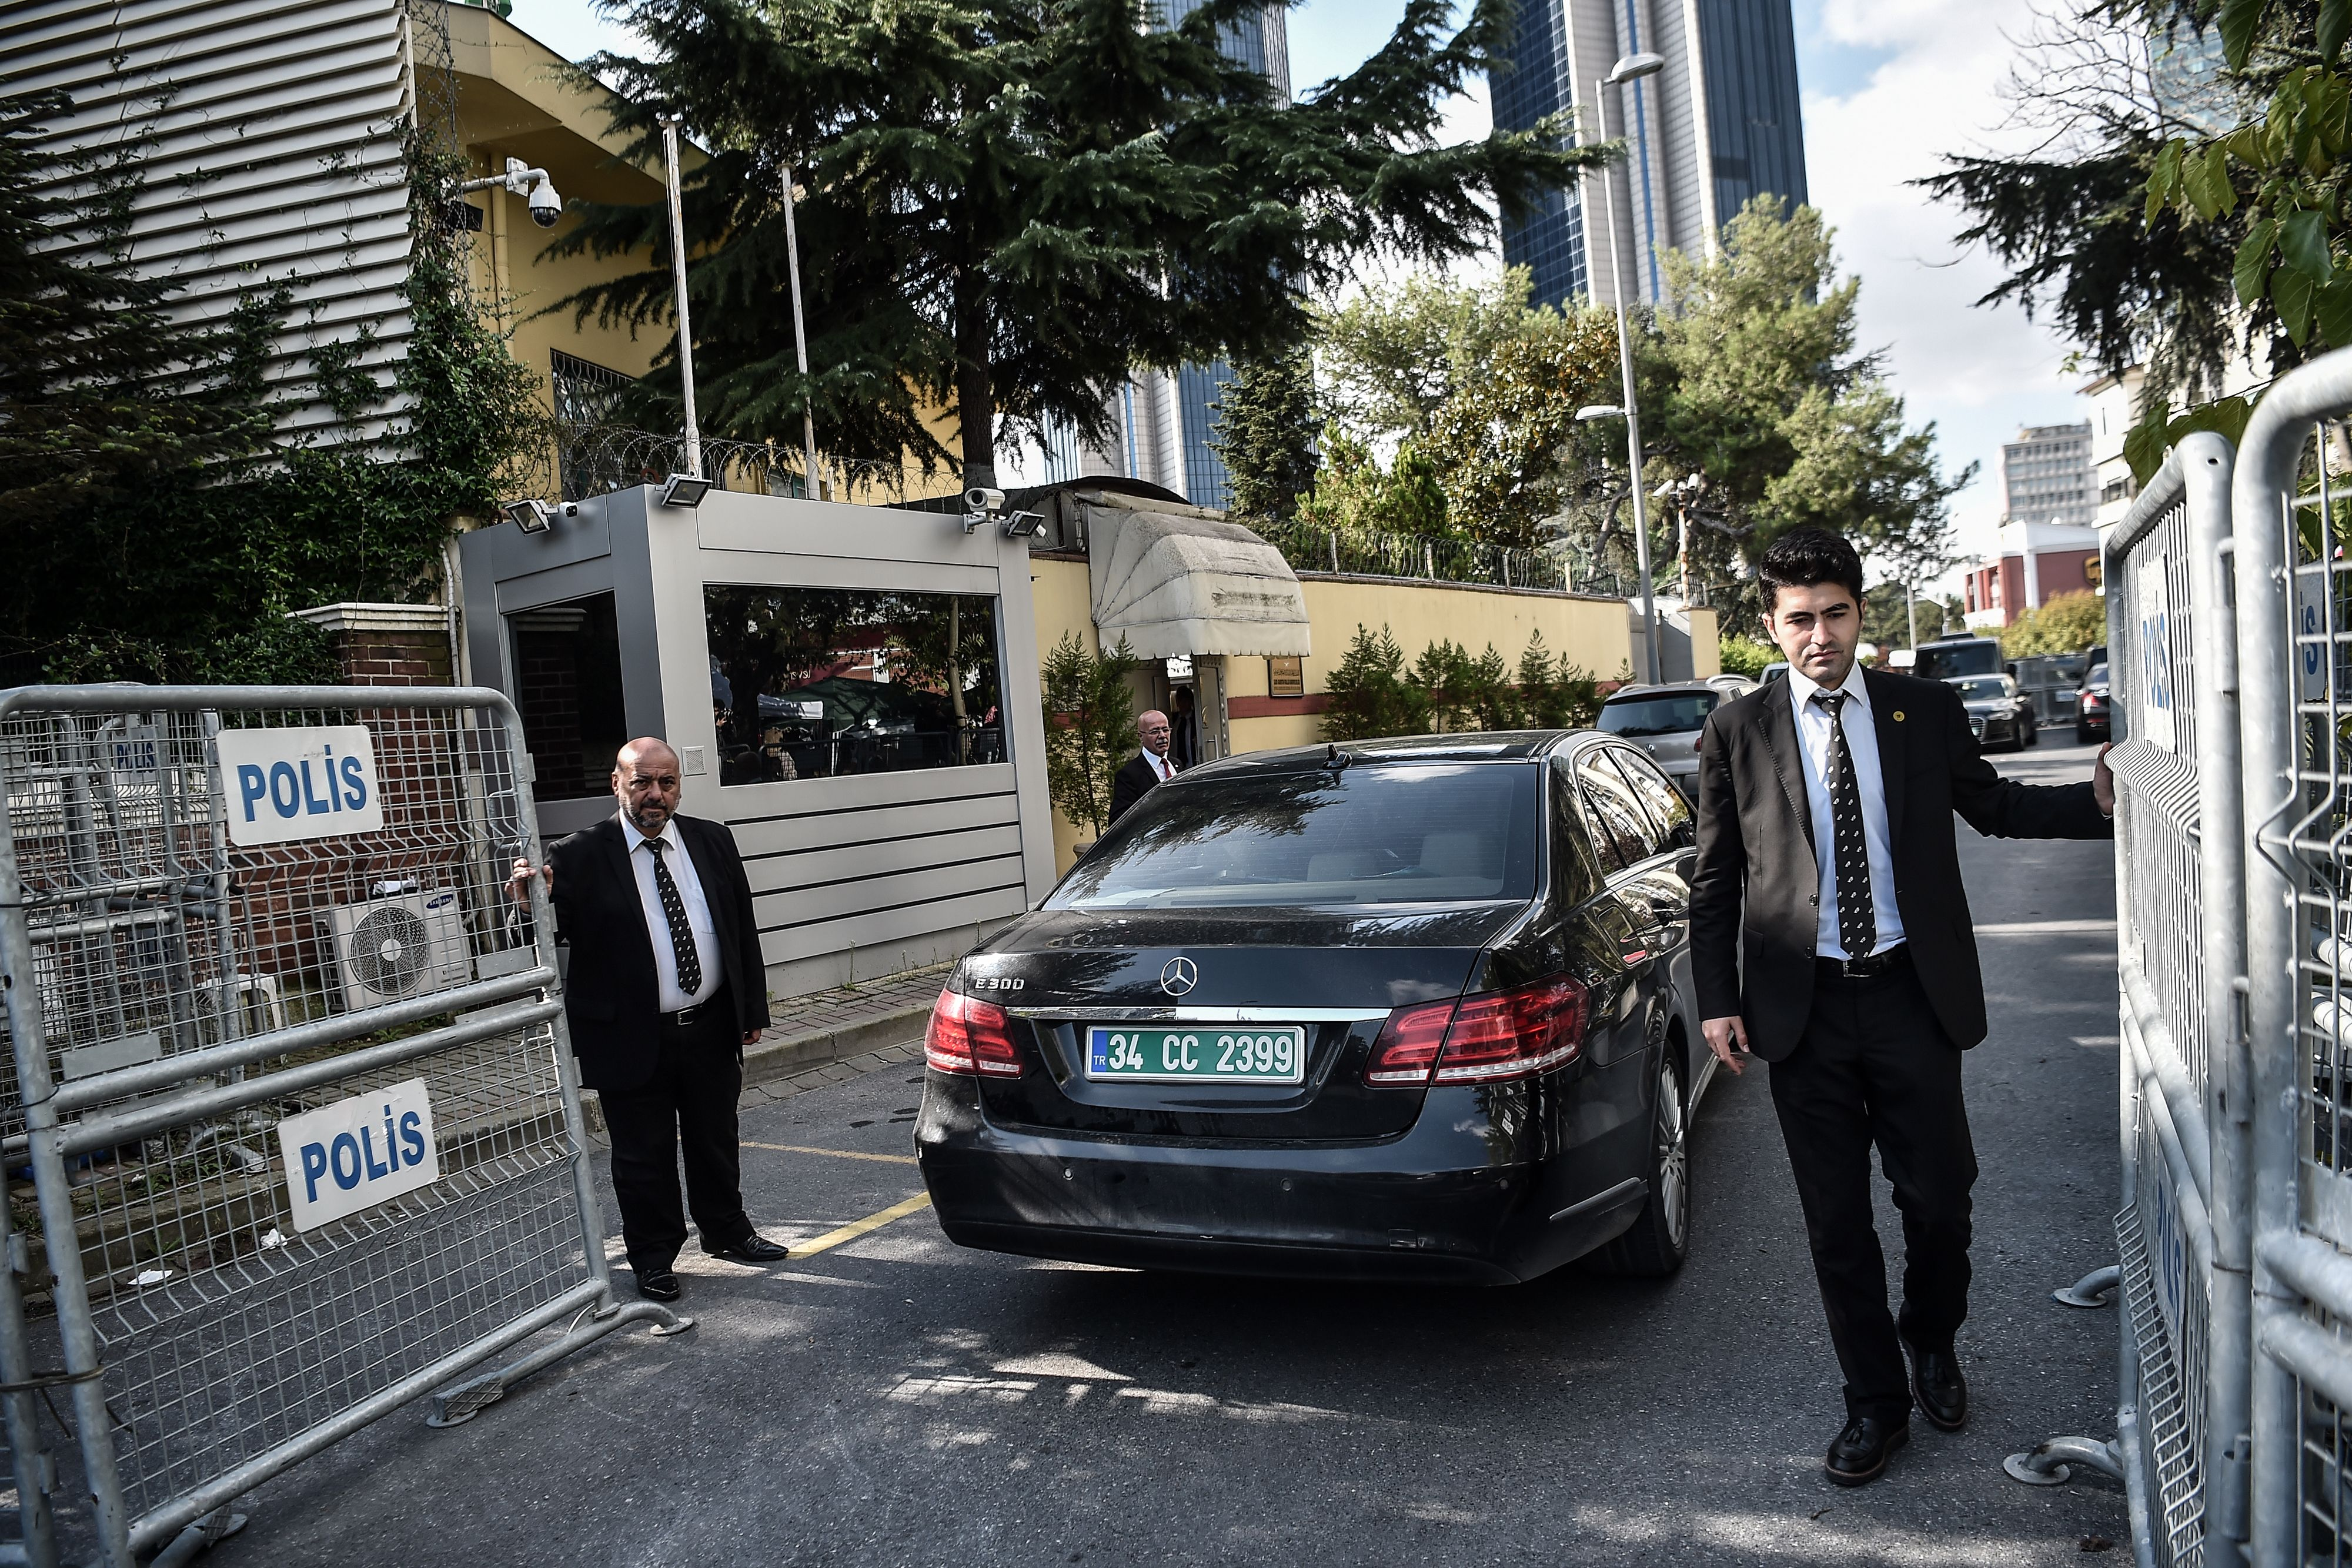 Security staff of the Saudi Arabian consulate in Istanbul open police barriers as a Saudi diplomatic vehicle arrives on October 16, 2018, following the departure of Turkish officials investigating the alleged murder of dissident journalist Jamal Khashoggi there. (Ozan Kose/AFP/Getty Images)